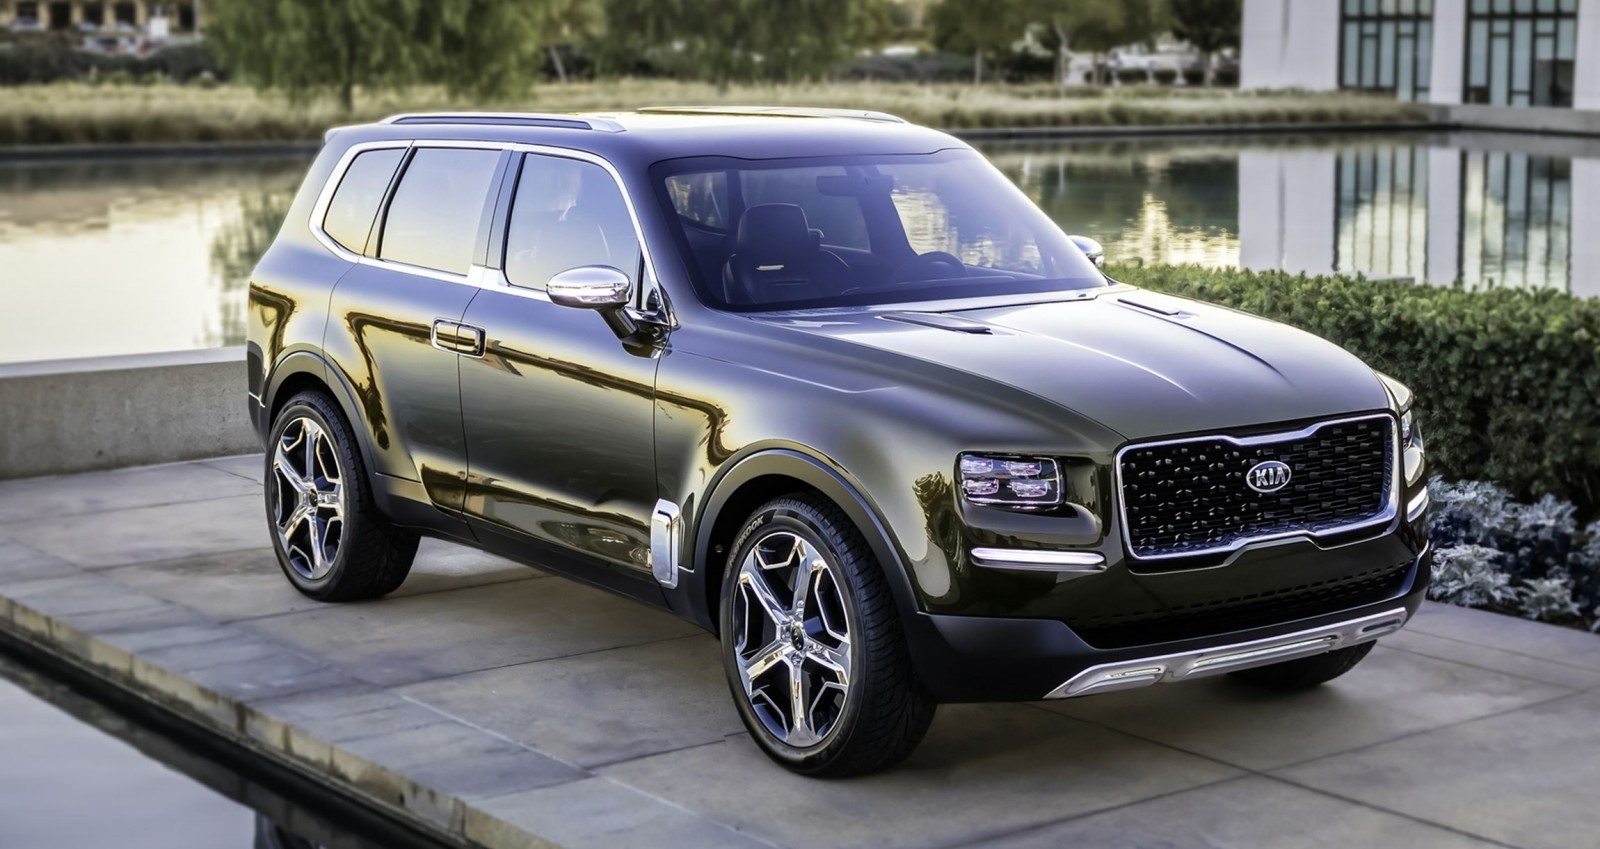 2016 kia telluride concept lwb suv brings 7 seat chalet cachet. Black Bedroom Furniture Sets. Home Design Ideas